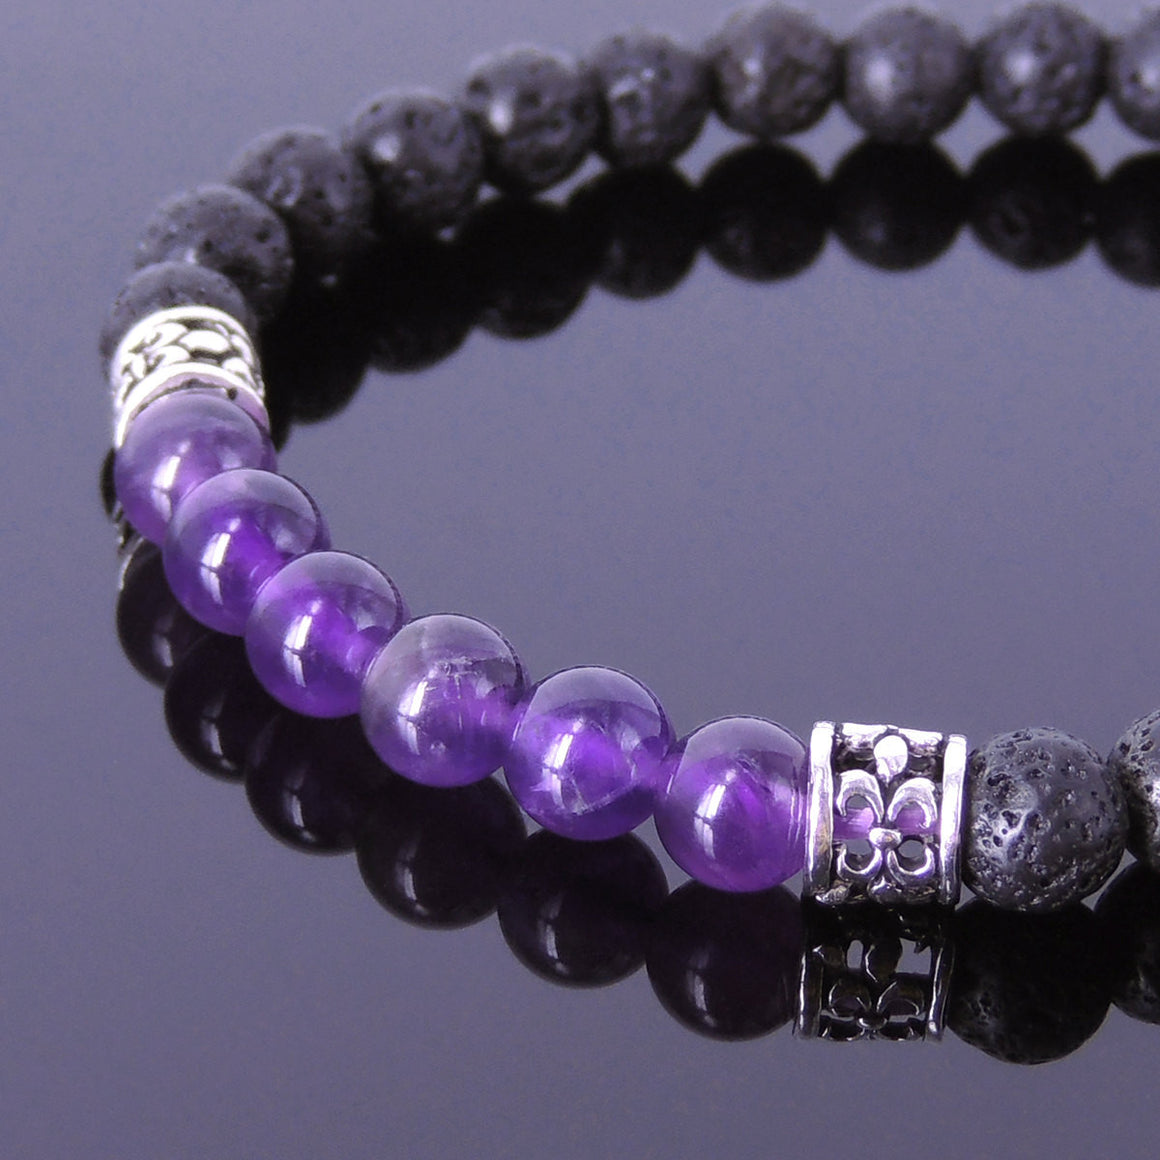 Meditation Tai Chi Healing Chakra Crystals 6mm Grade AA Amethyst & Lava Rock Healing Gemstone Bracelet with Sterling Silver Fleur de Lis Charm Spacers - Handmade by Gem & Silver BR424